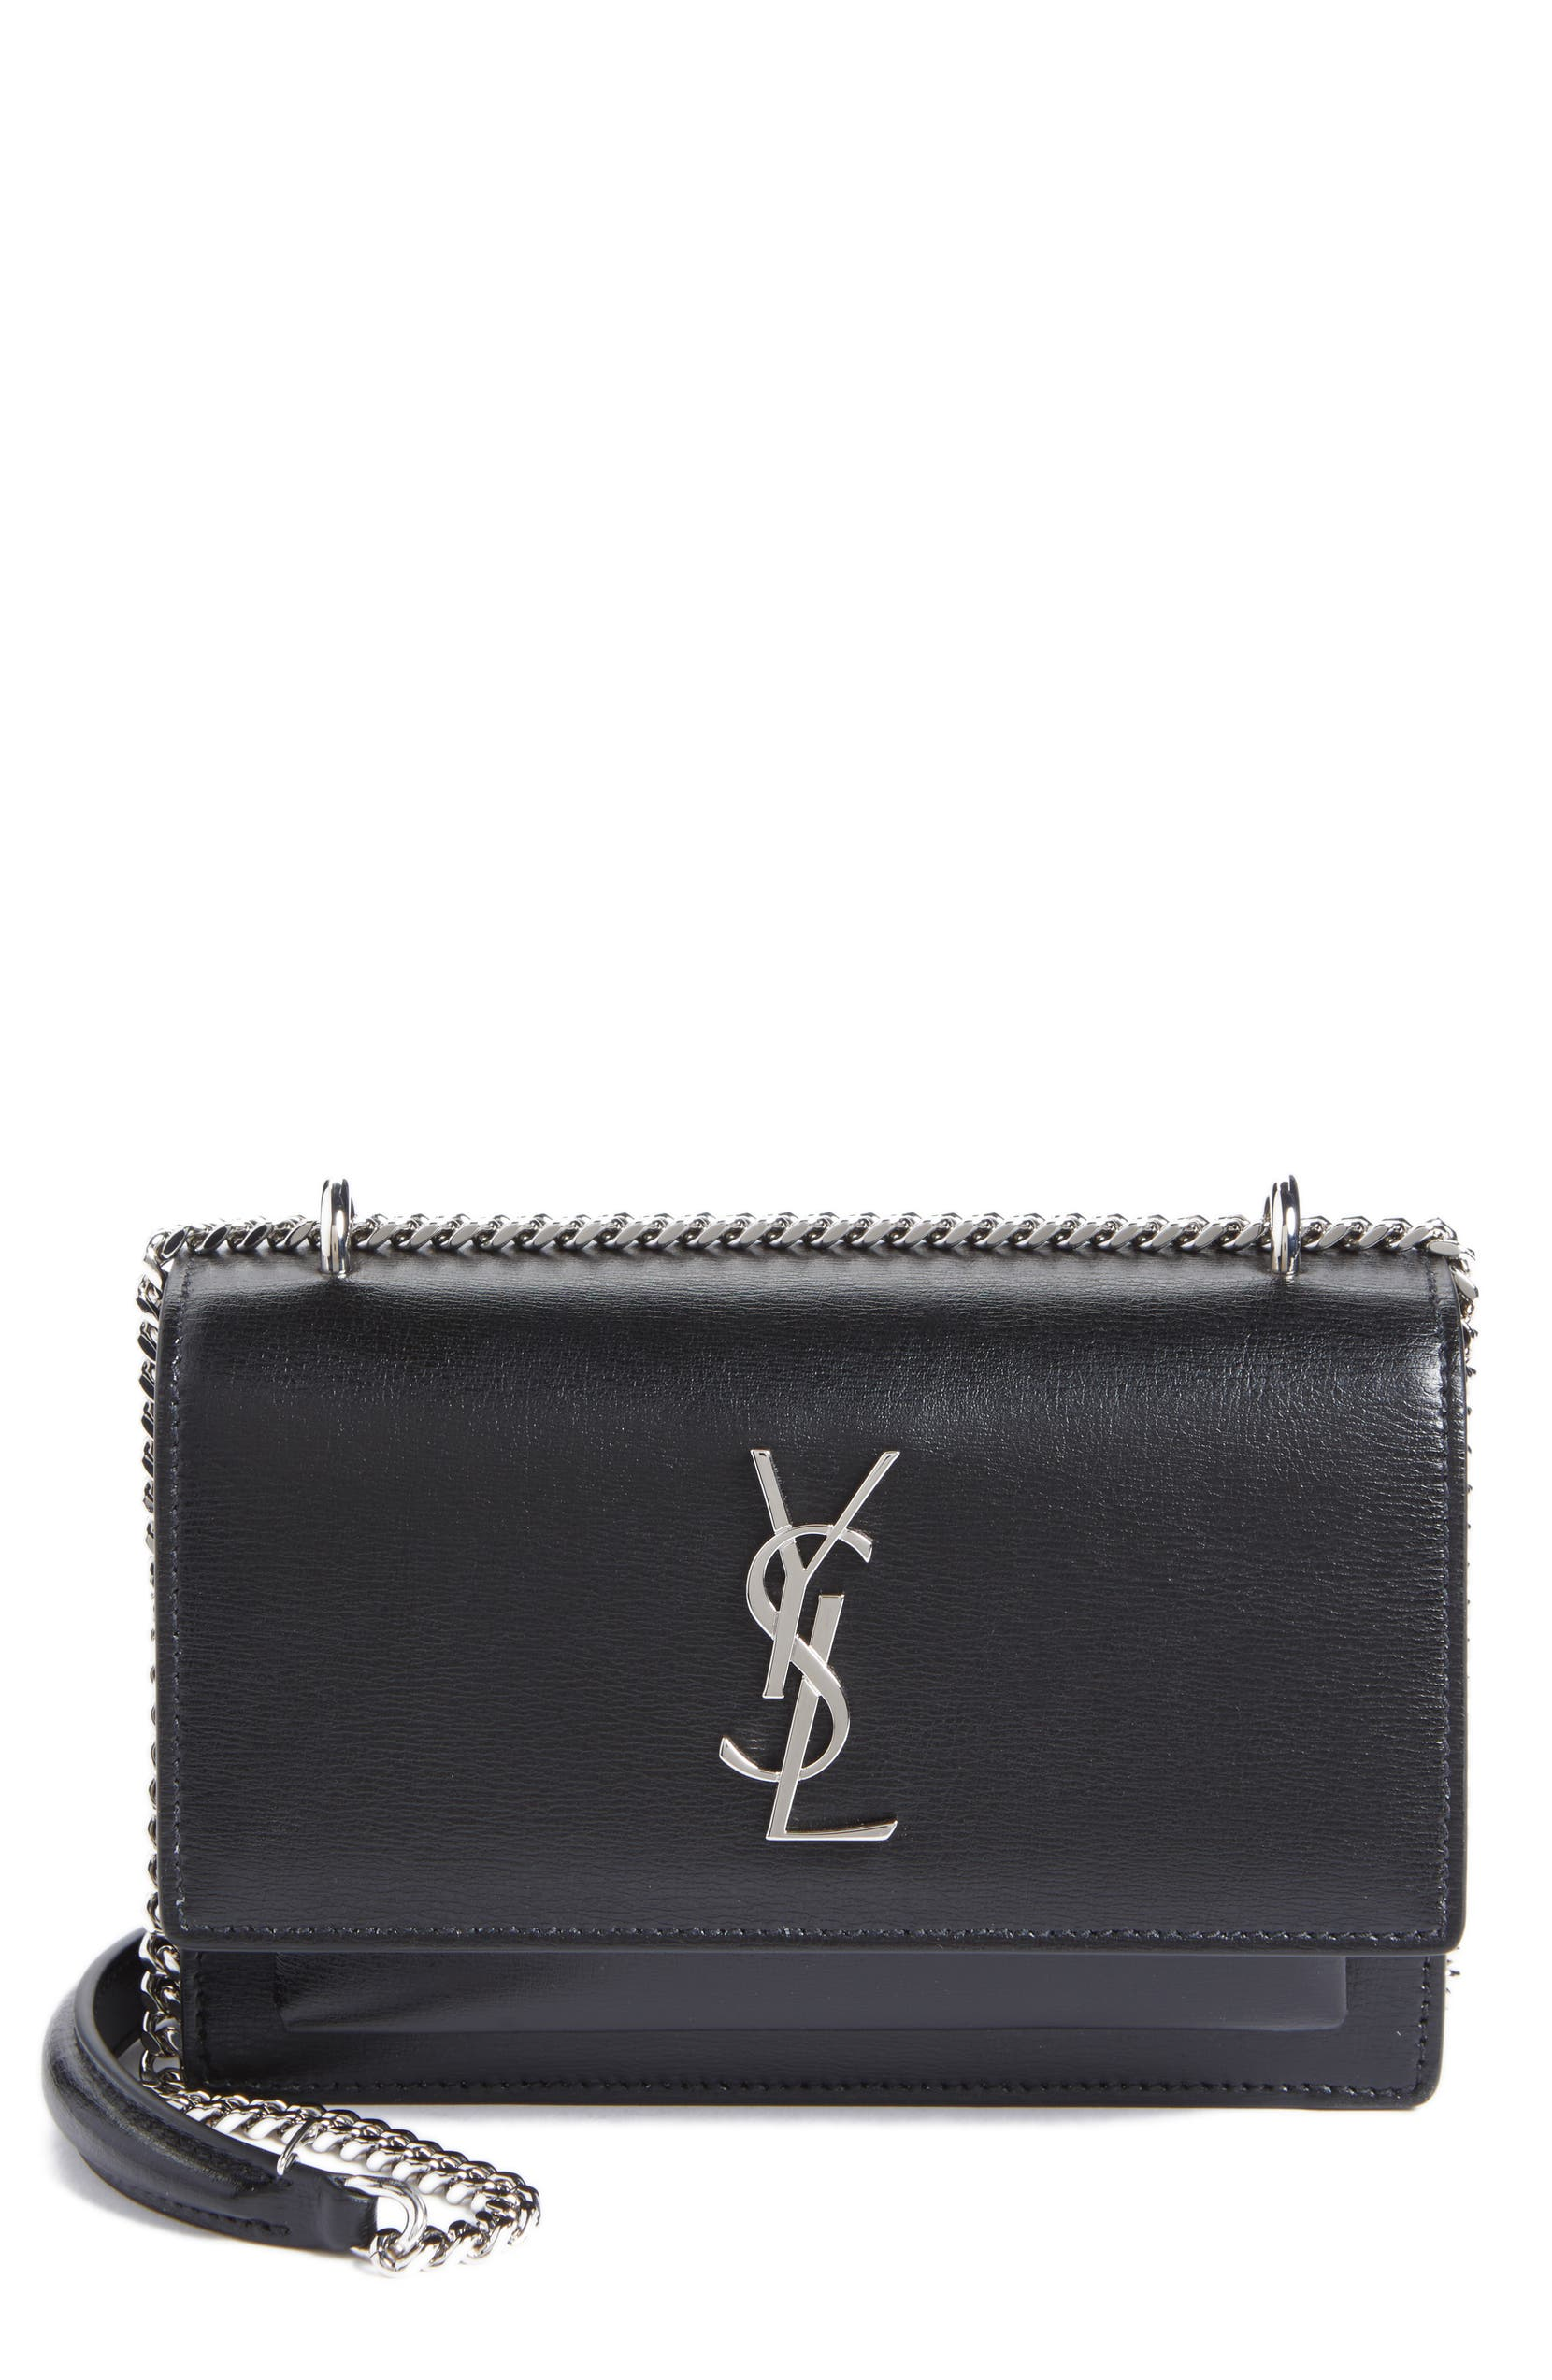 01d3966c965 Saint Laurent Sunset Leather Wallet on a Chain | Nordstrom